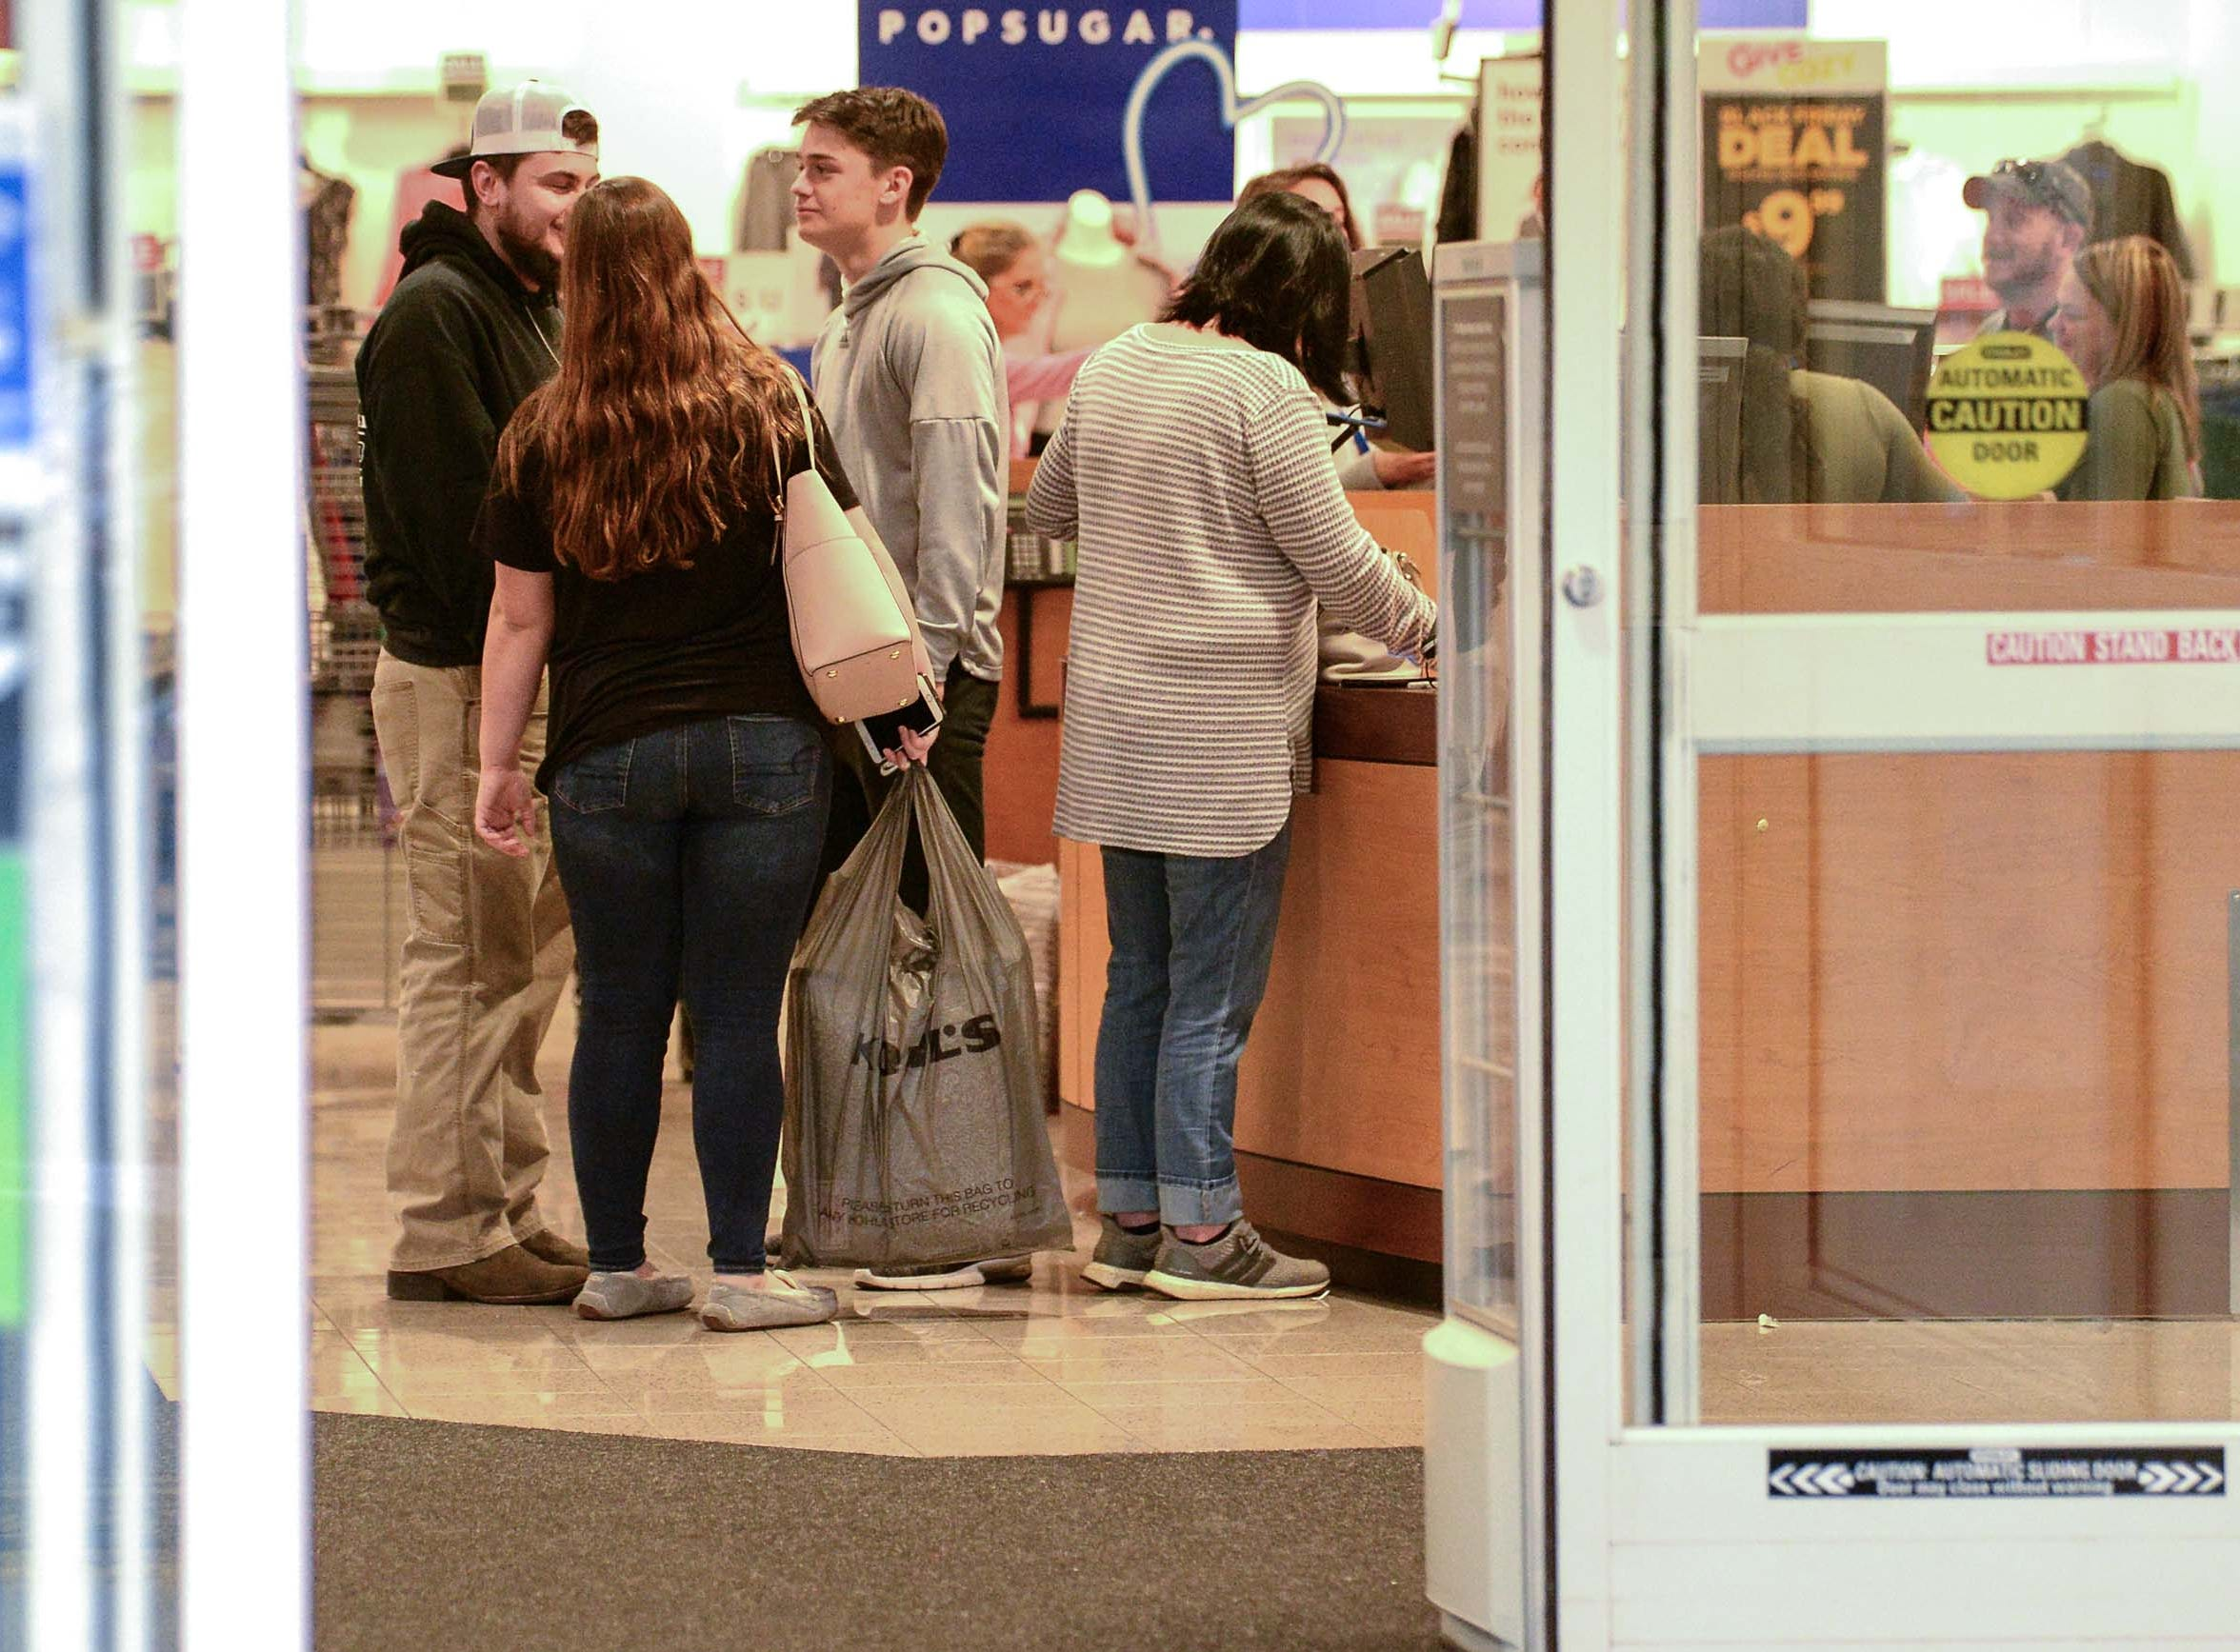 People check out at a register during Black Friday shopping at Kohl's in Anderson on Thanksgiving Day, Thursday, November 22, 2018.